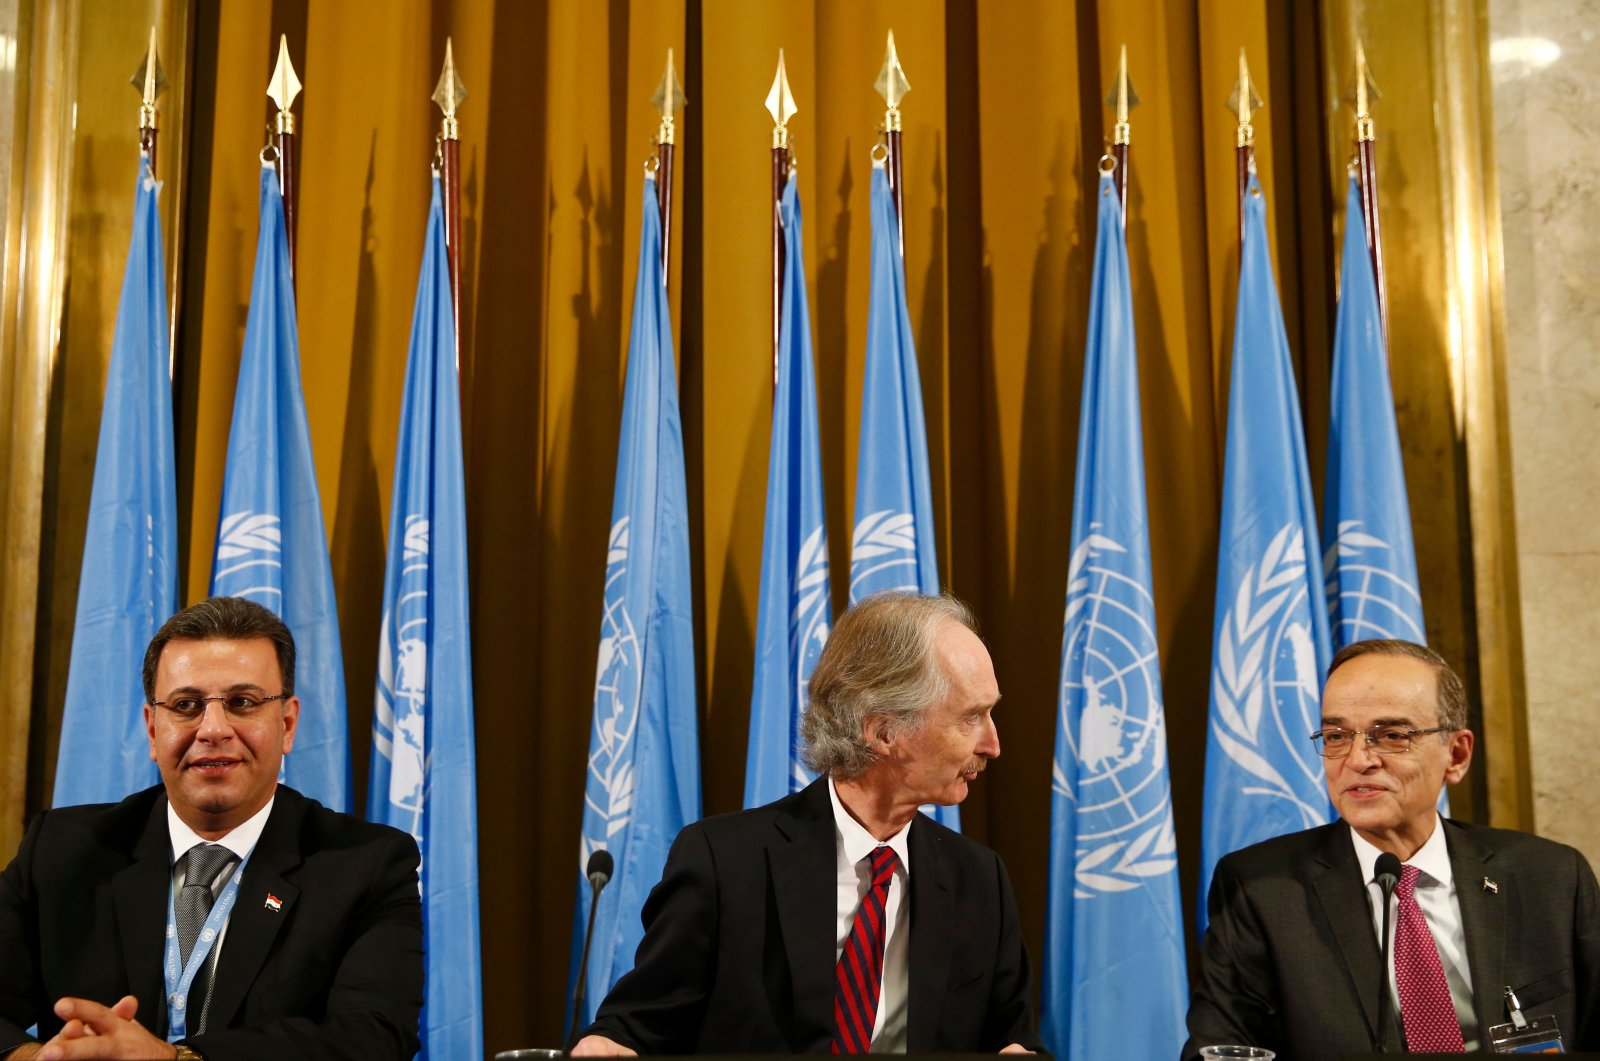 U.N. Special Envoy to Syria Geir Pedersen (C), co-chair Syrian regime official Ahmad al-Kuzbari (L) and co-chair Syrian Negotiation Commission member Hadi al-Bahra attend a ceremony to mark the opening of a meeting of the Syrian constitutional committee at the United Nations Offices in Geneva, Switzerland, Oct. 30, 2019. (AFP Photo)